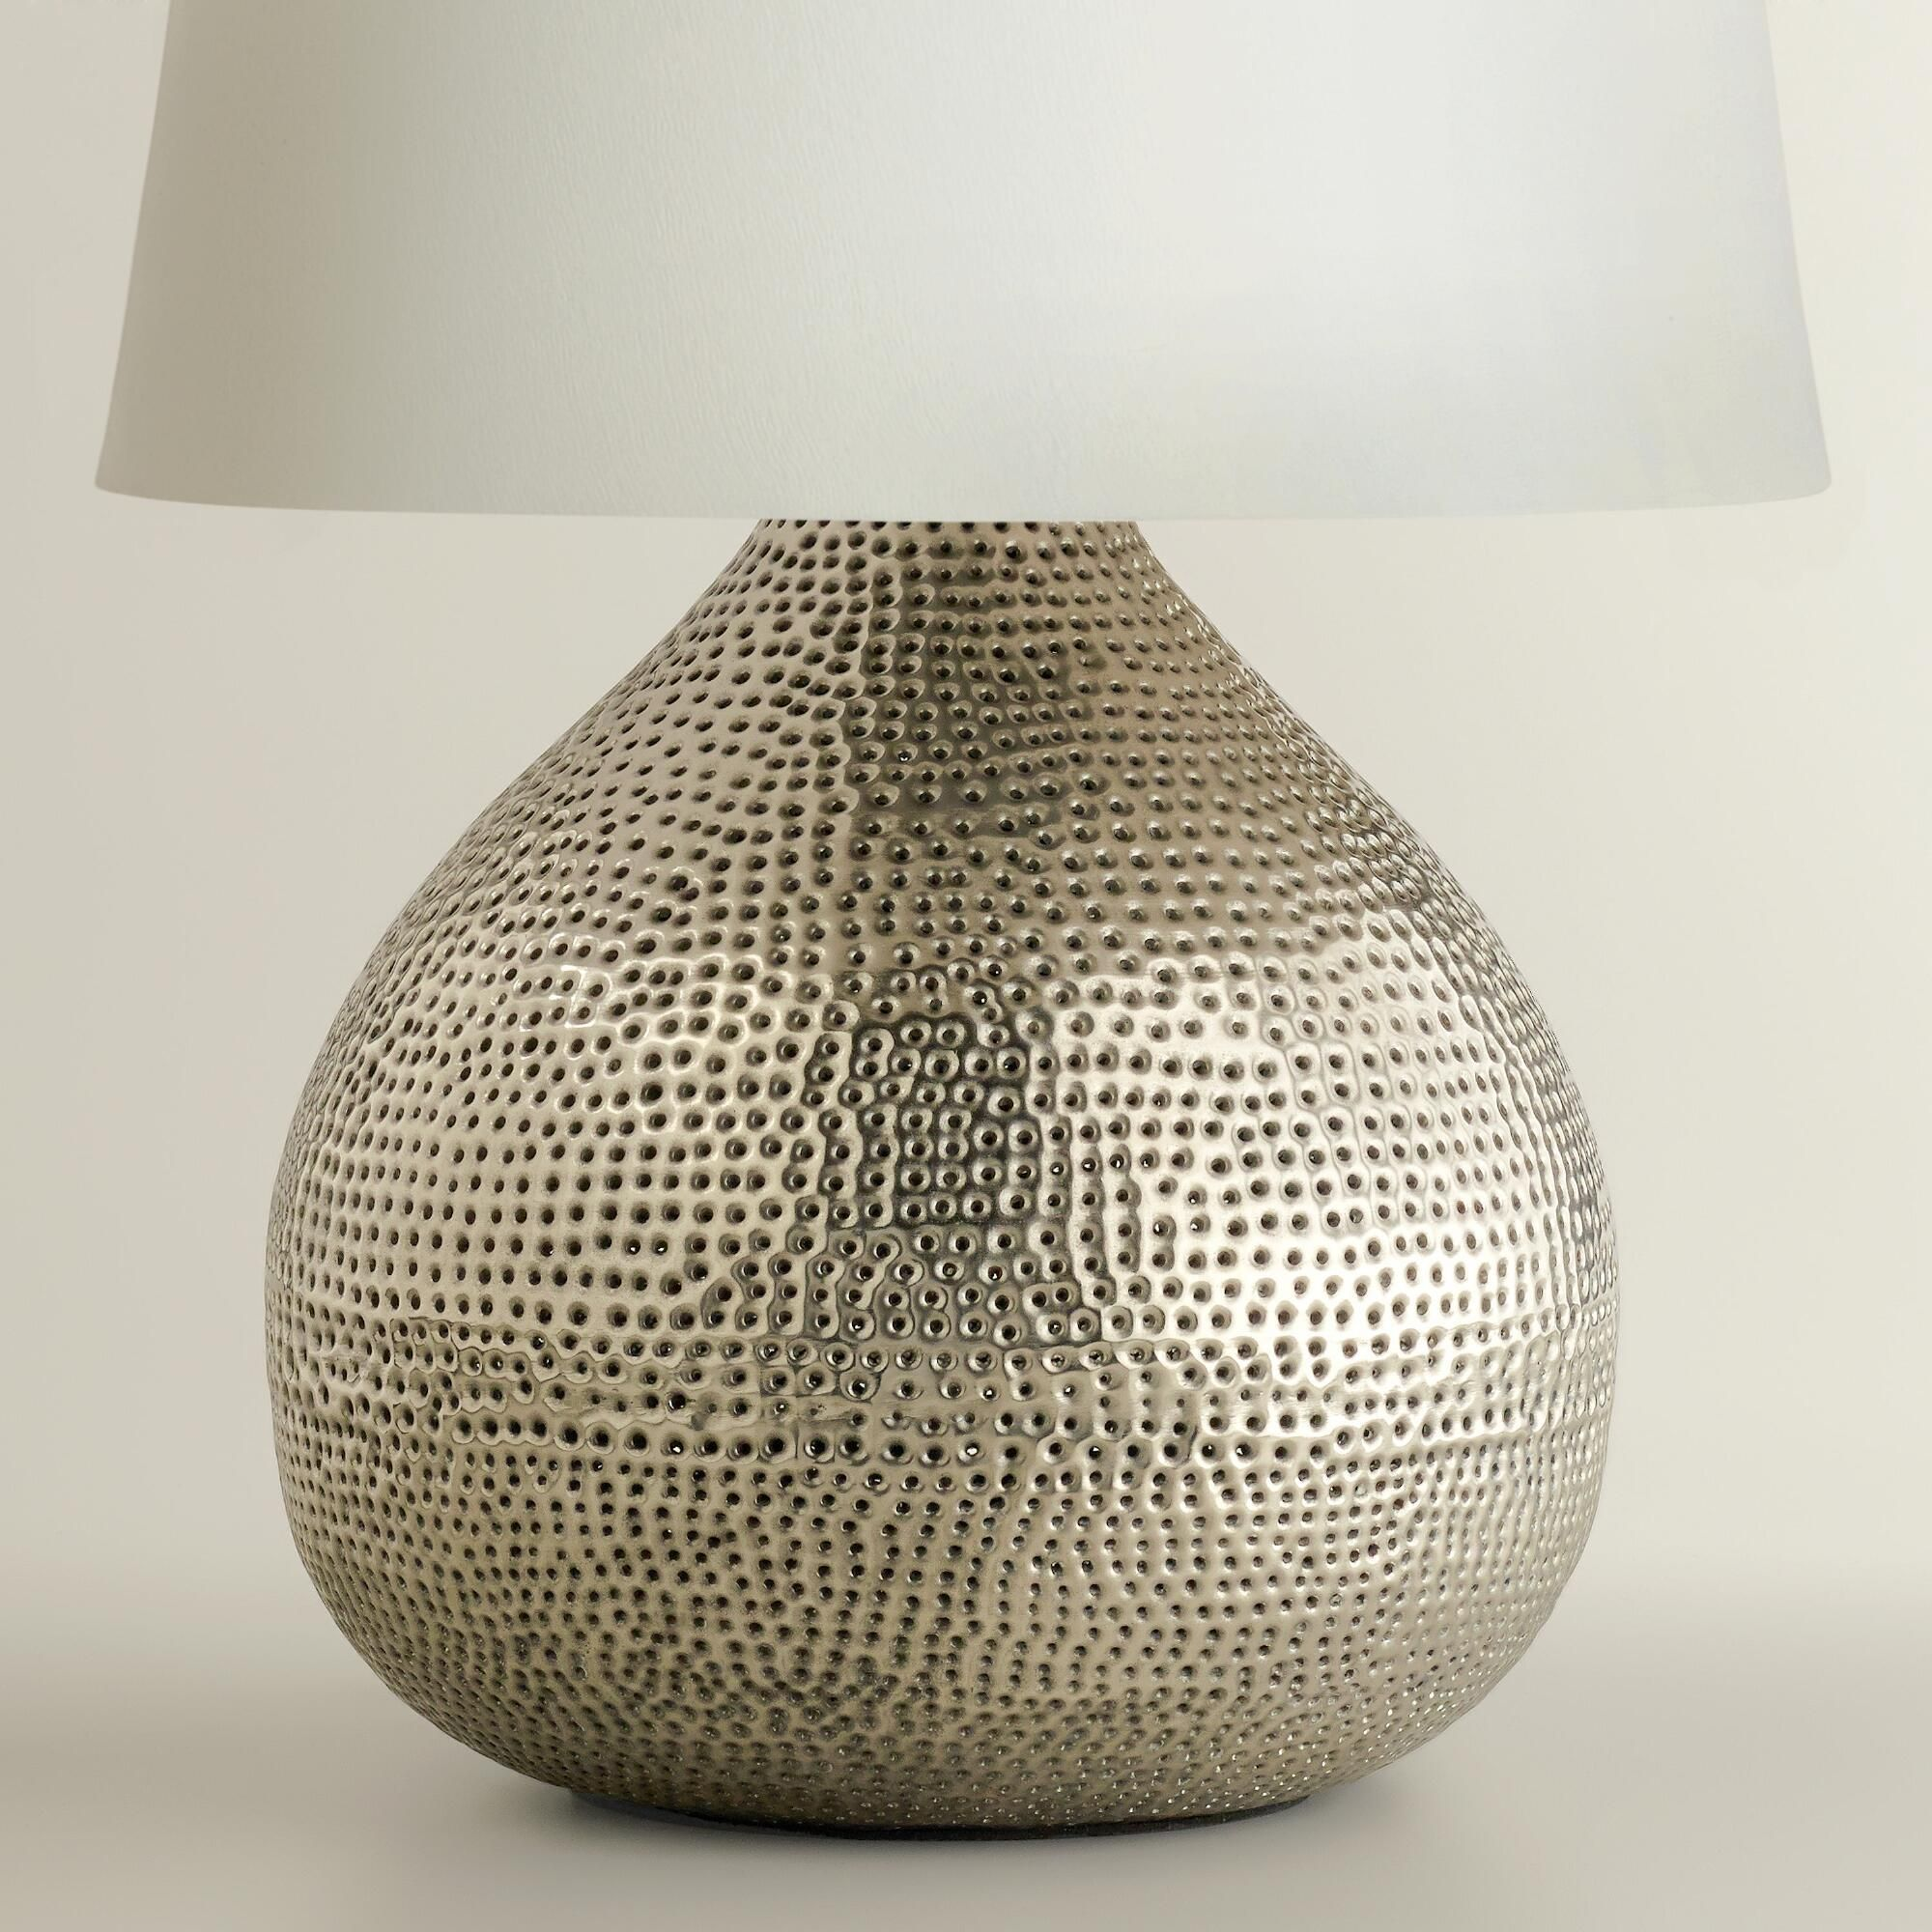 Pewter prema punched metal table lamp base table lamp base pewter prema punched metal table lamp base world market geotapseo Image collections